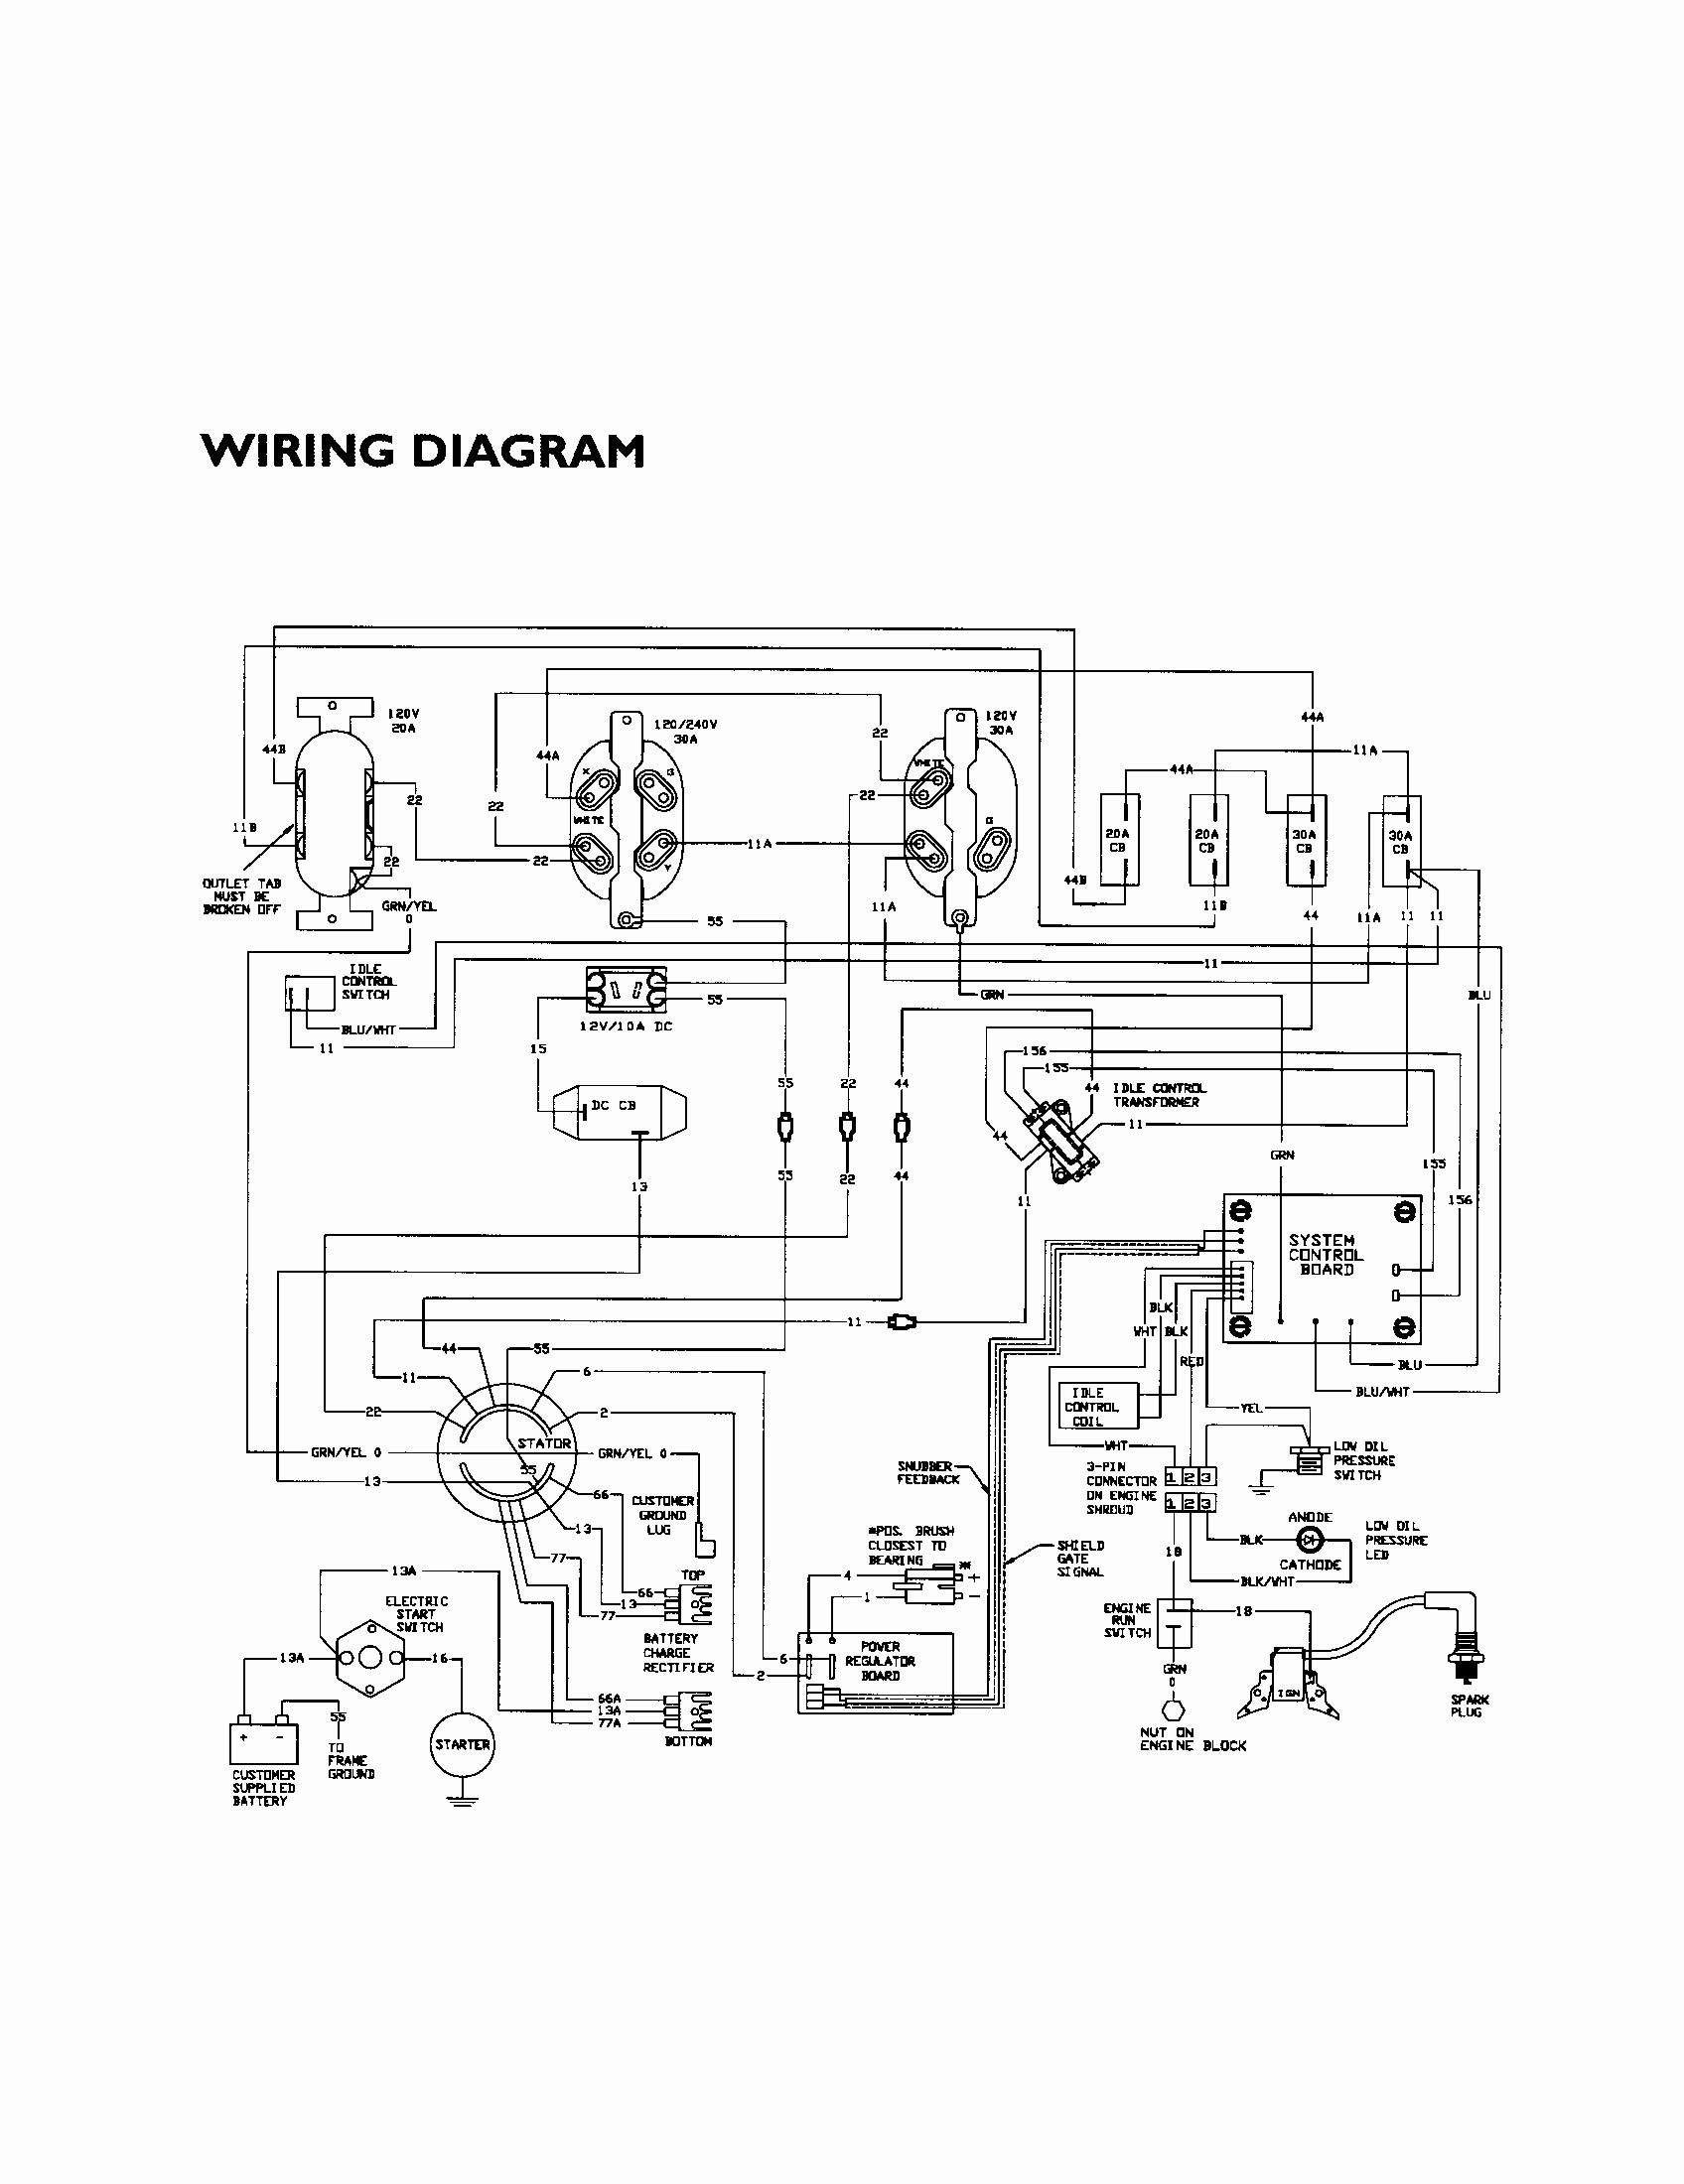 5915a Whole House Generator Wiring Diagram Wiring Diagram Image Wiring Library